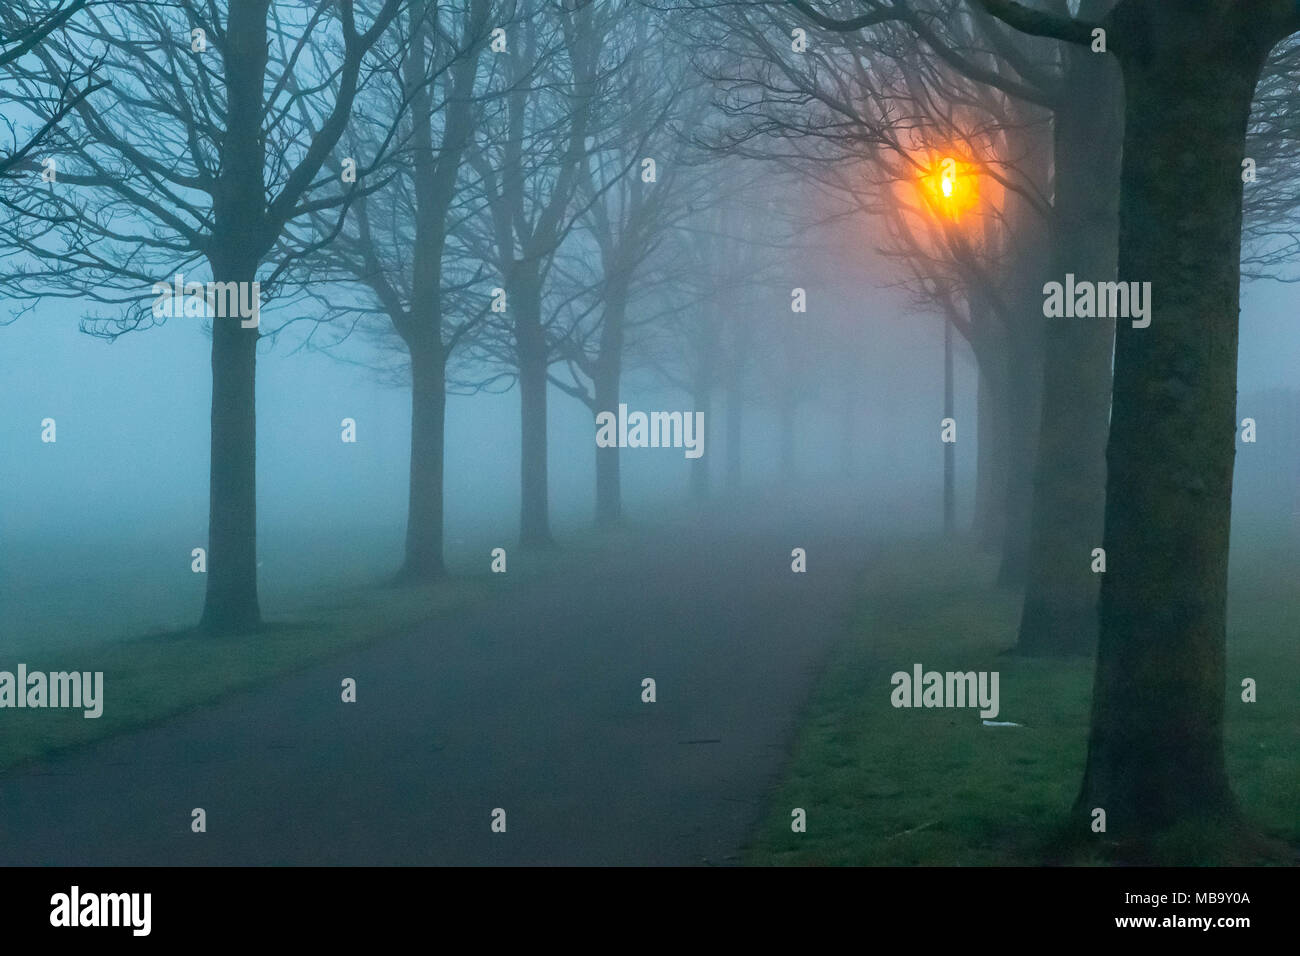 Warrington, Cheshire, UK. 9th April, 2018. A lamp lit, tree-lined road in Victoria Park, Warrington, Cheshire, England, UK early on a foggy Monday morning 9th April 2018 Credit: John Hopkins/Alamy Live News Stock Photo